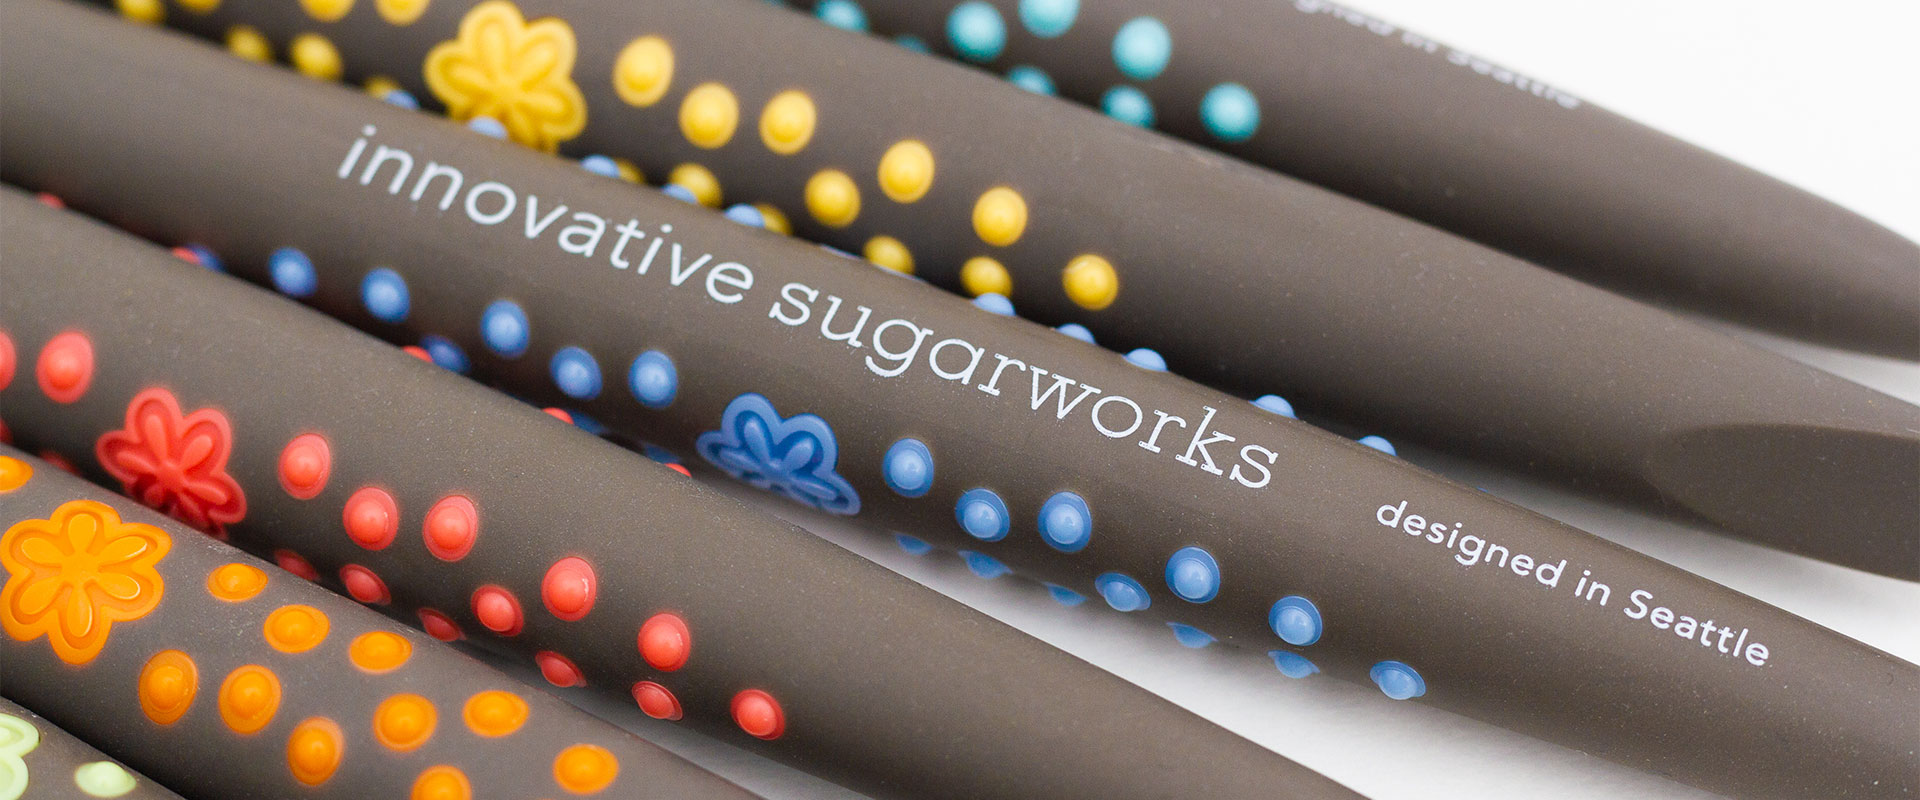 Innovative Sugarworks Product Designed by Pillar Product Design